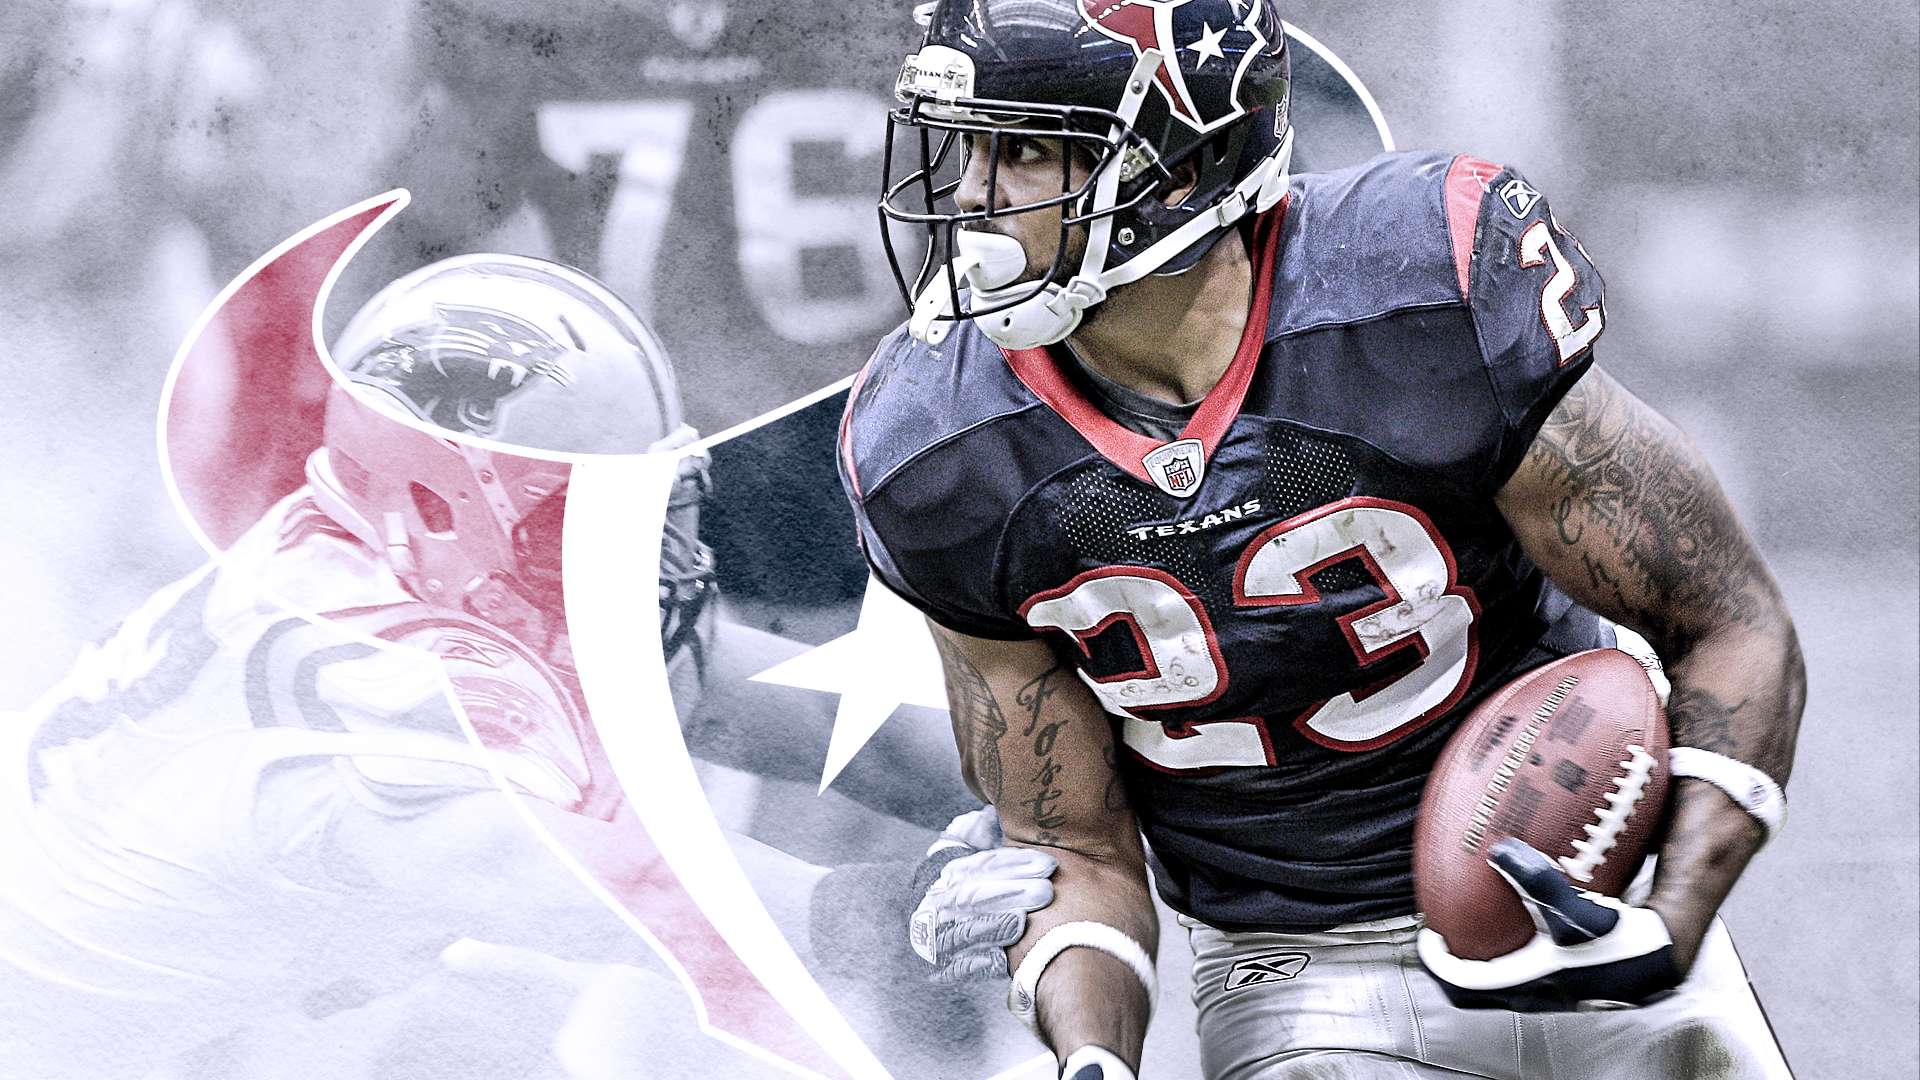 Houston Texans Nfl 1920x1080 Hd Images   last added page 2 1920x1080